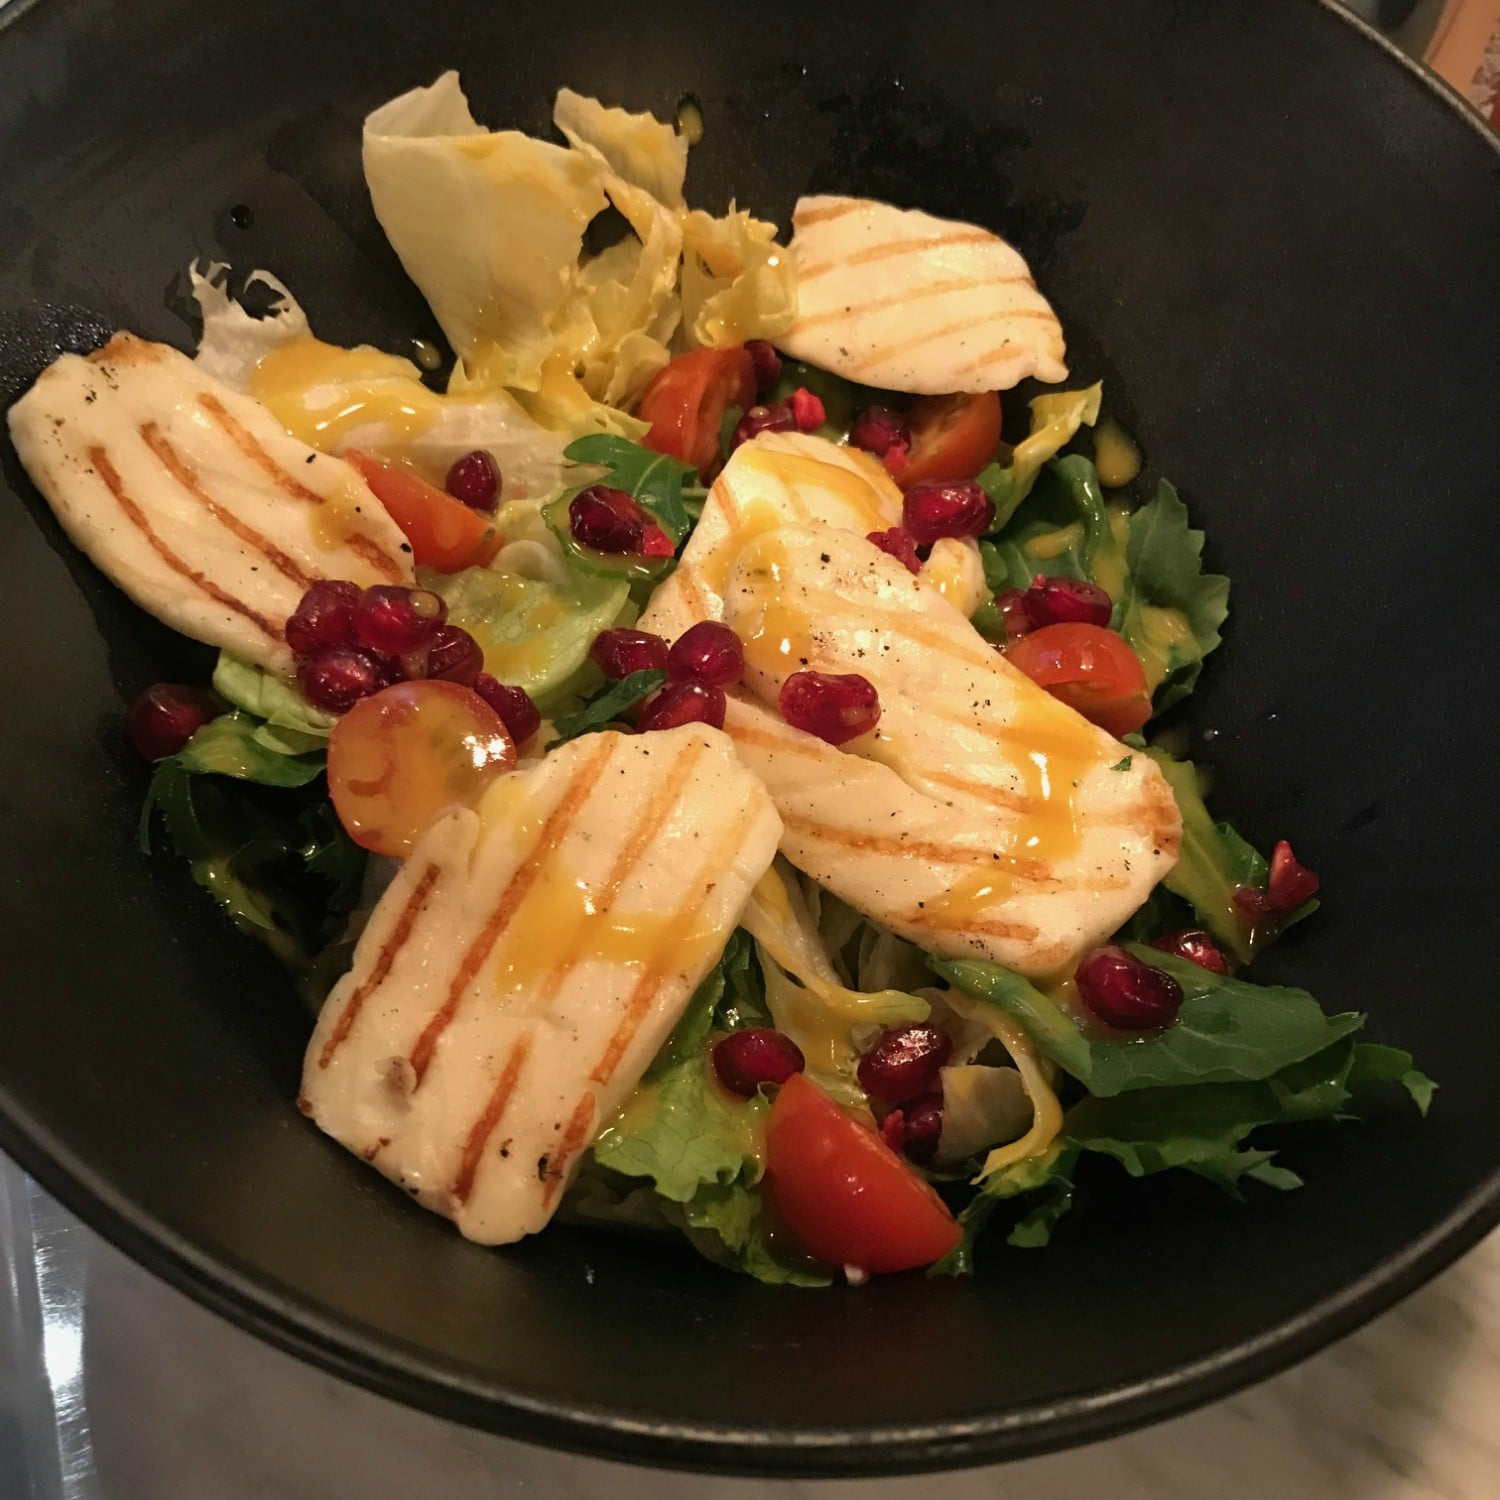 The salad menu at Street Burger is masterminded by Hassan bin Ali, who works for the first vegetarian Michelin star restaurant in New York